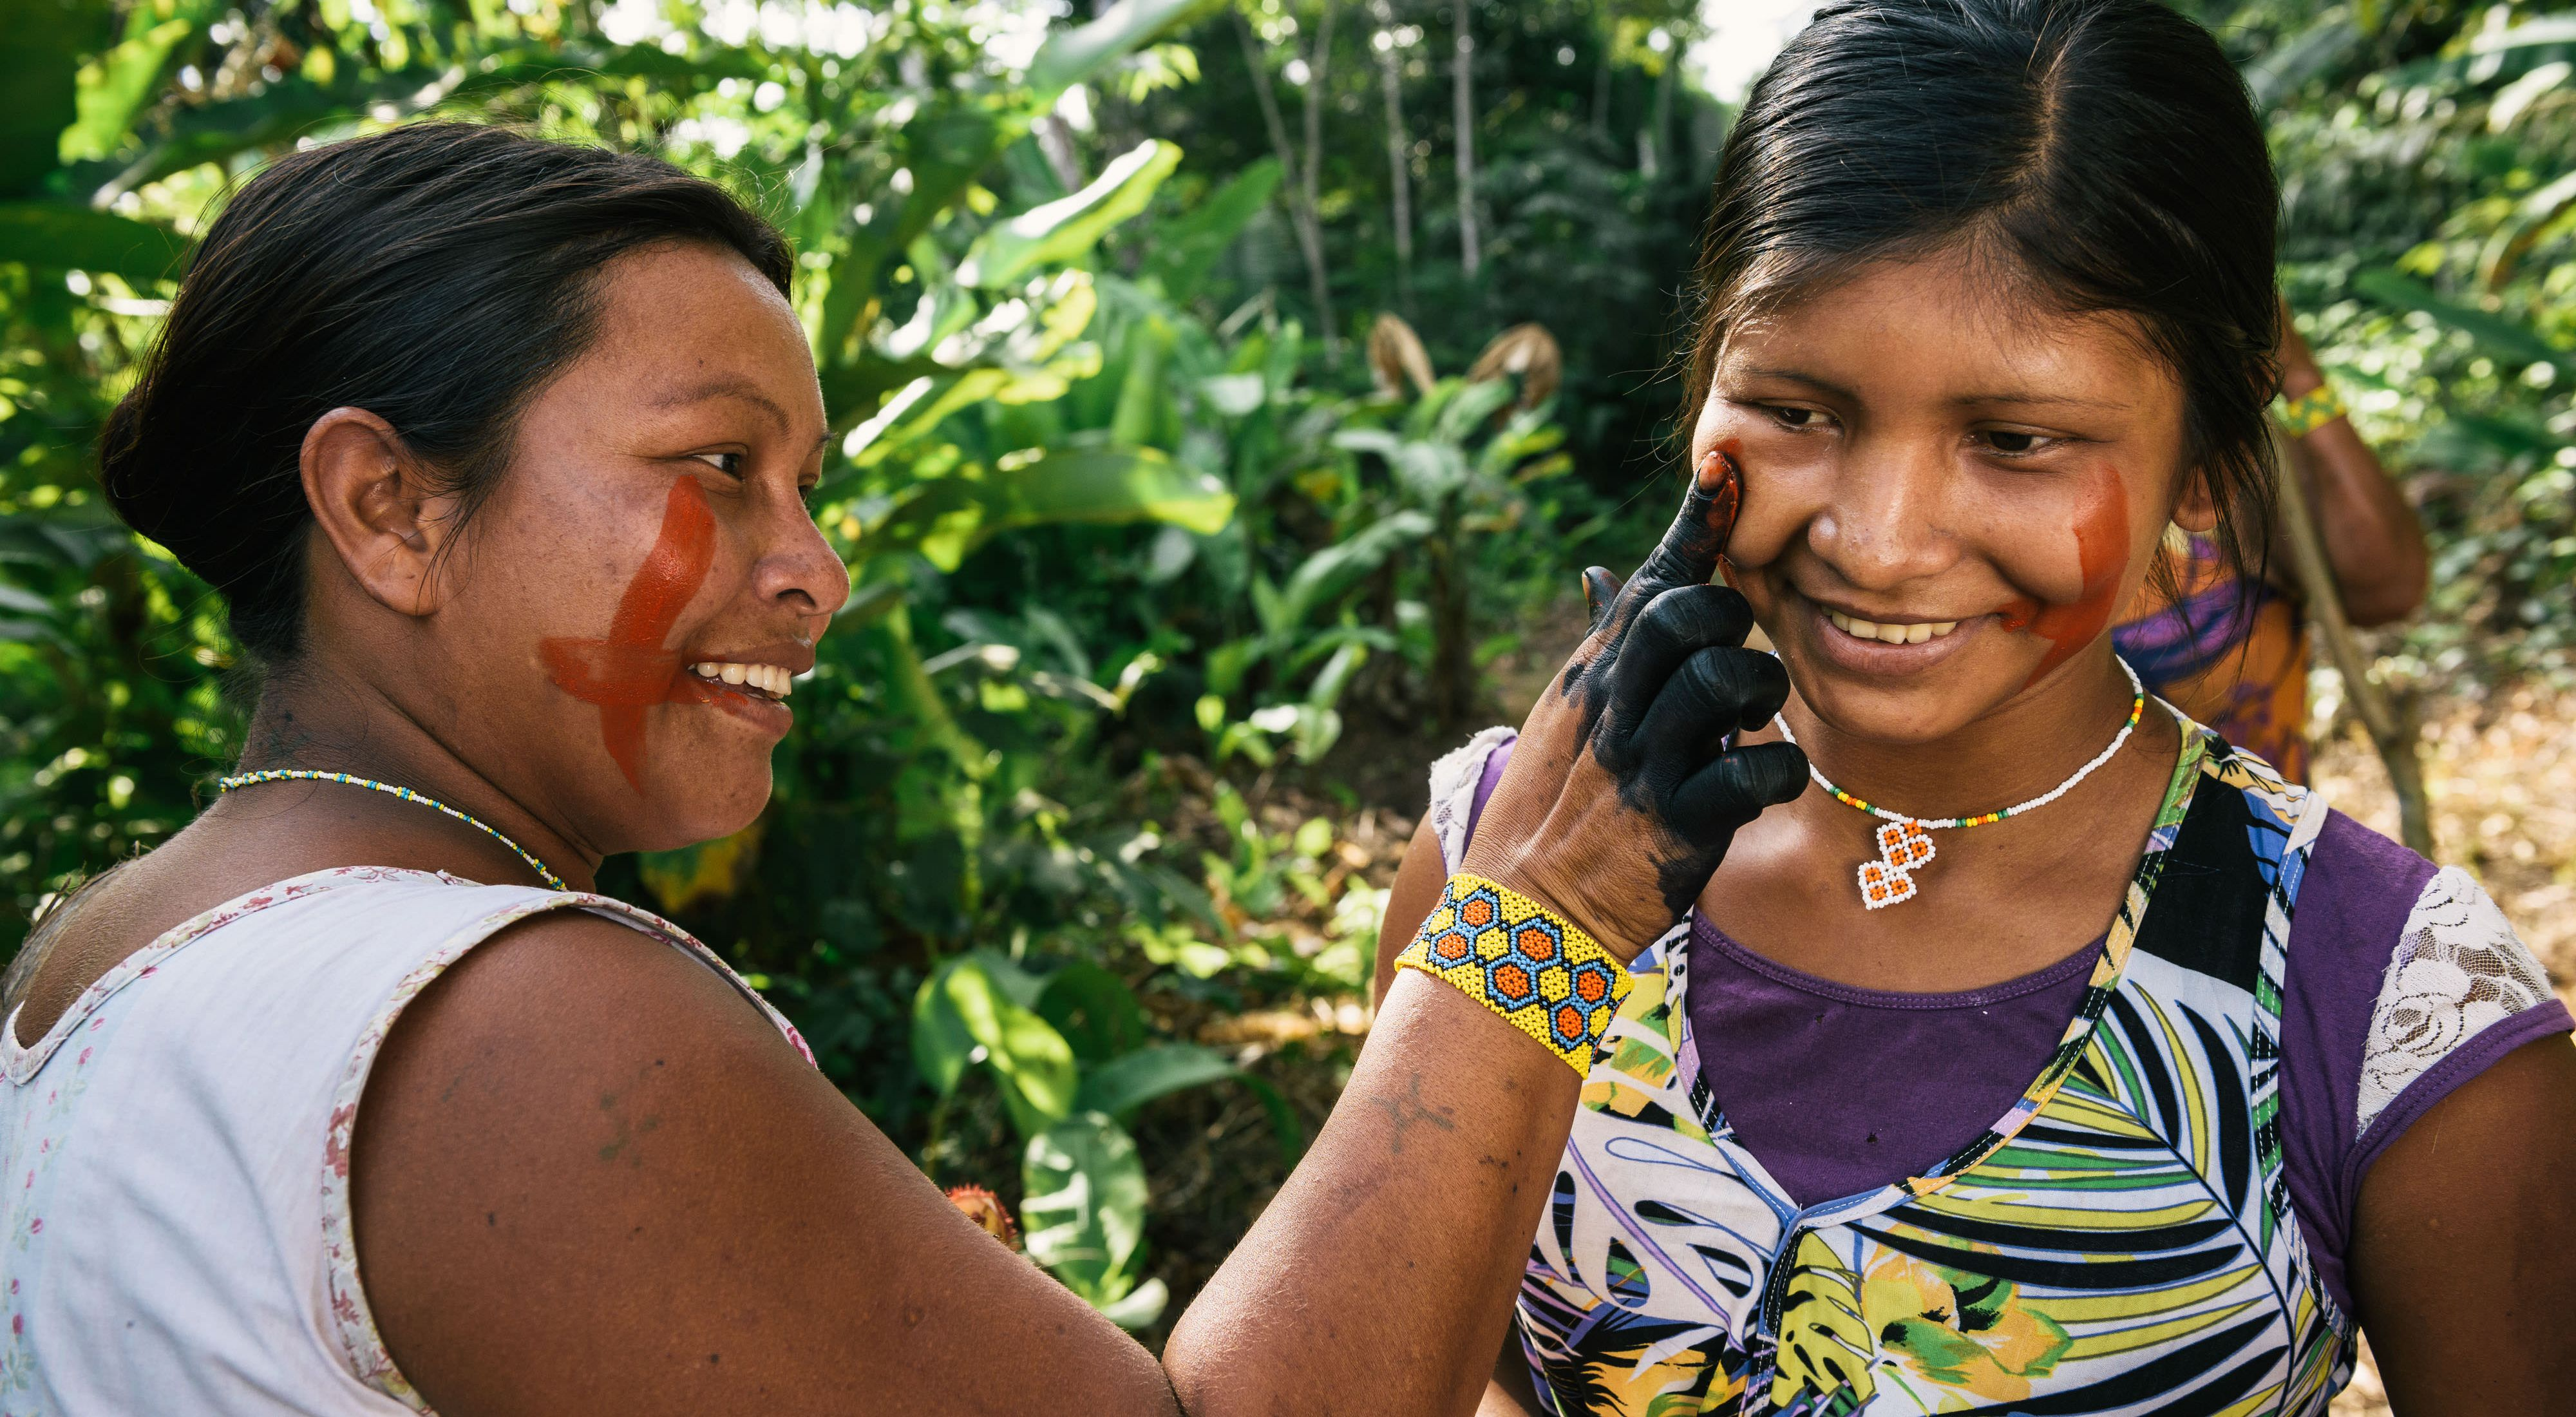 Xikrin women painting each other's faces in a forest near the Pot-Kro Village, Brazil.